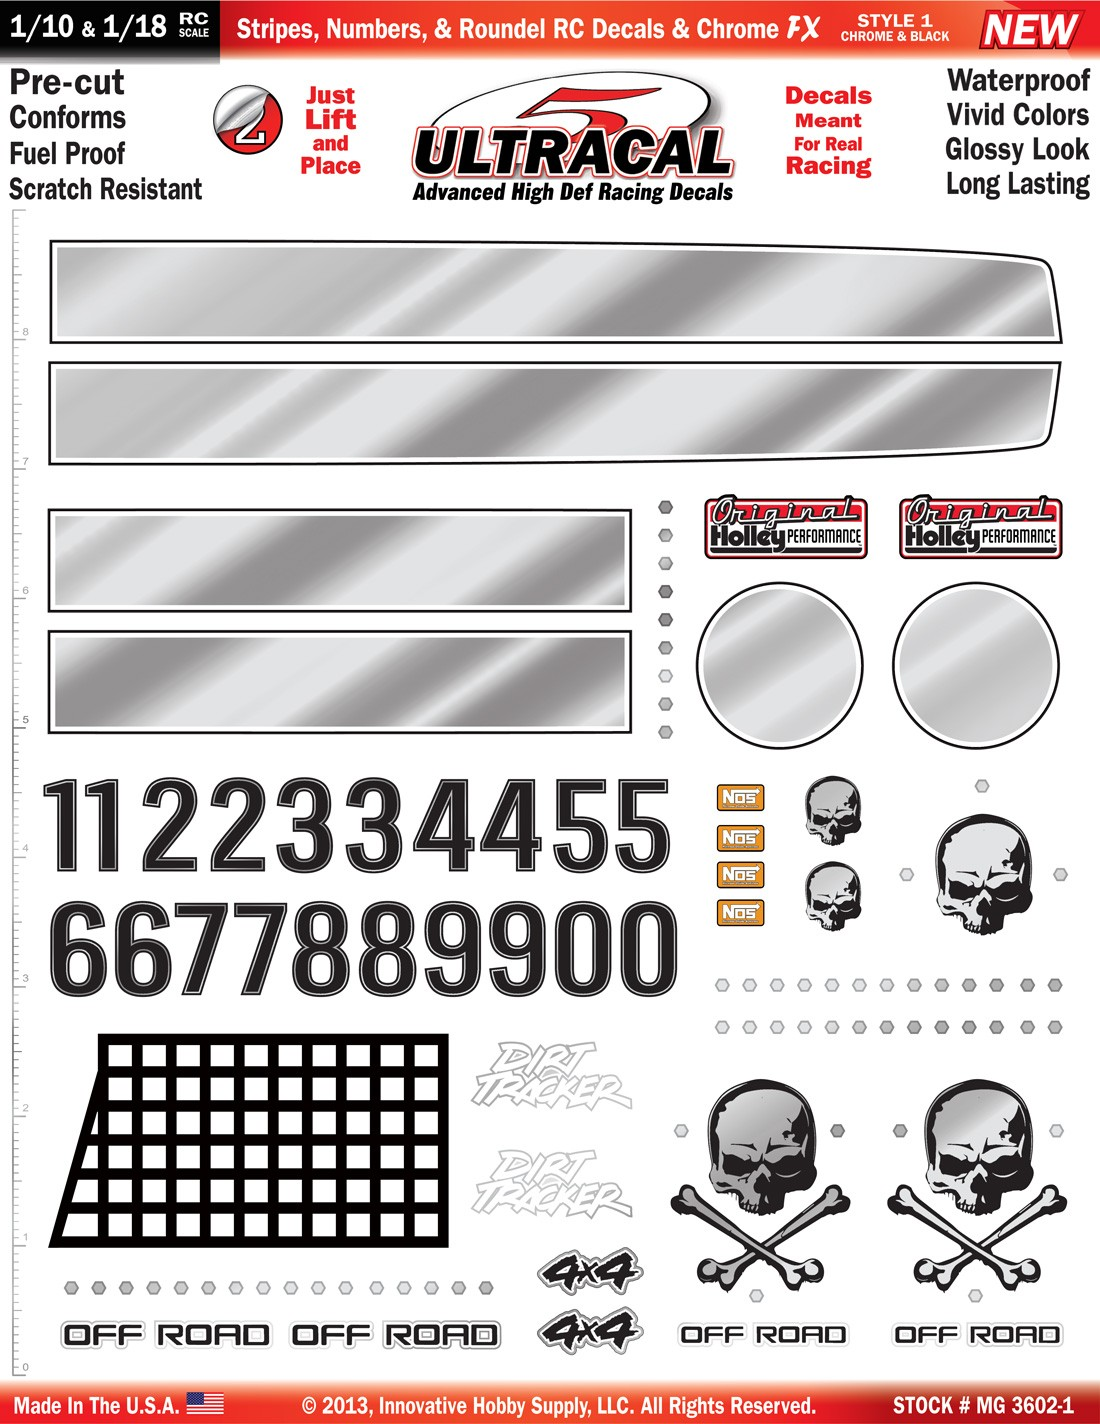 MG 3602-1 Ultracal Black Stripes, Numbers, & Roundel RC Decals & Chrome FX for 1:10 and 1:18 Scale